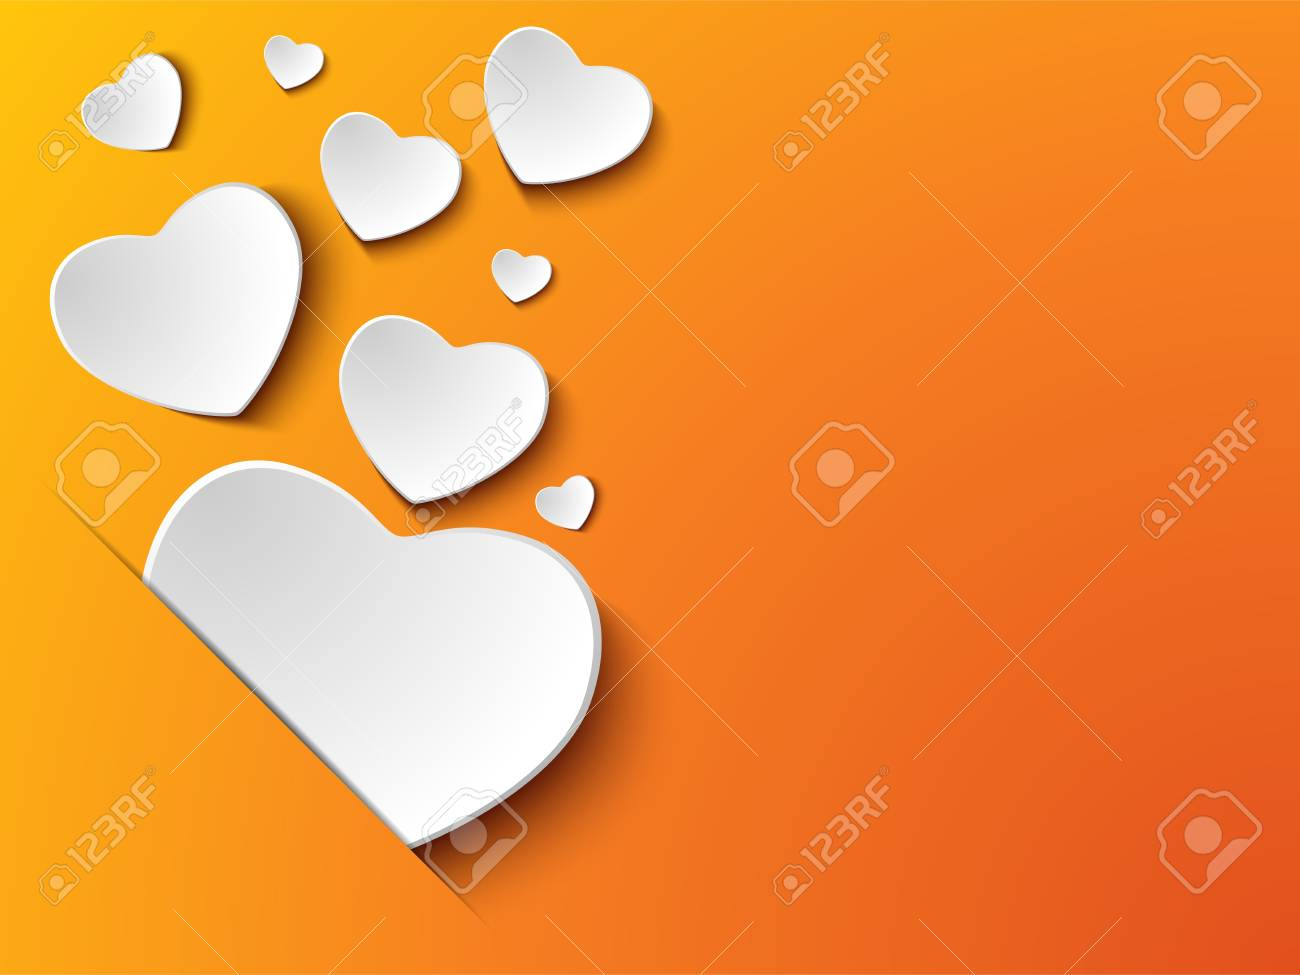 Valentine Day Heart on Yellow  Background Stock Vector - 17501379